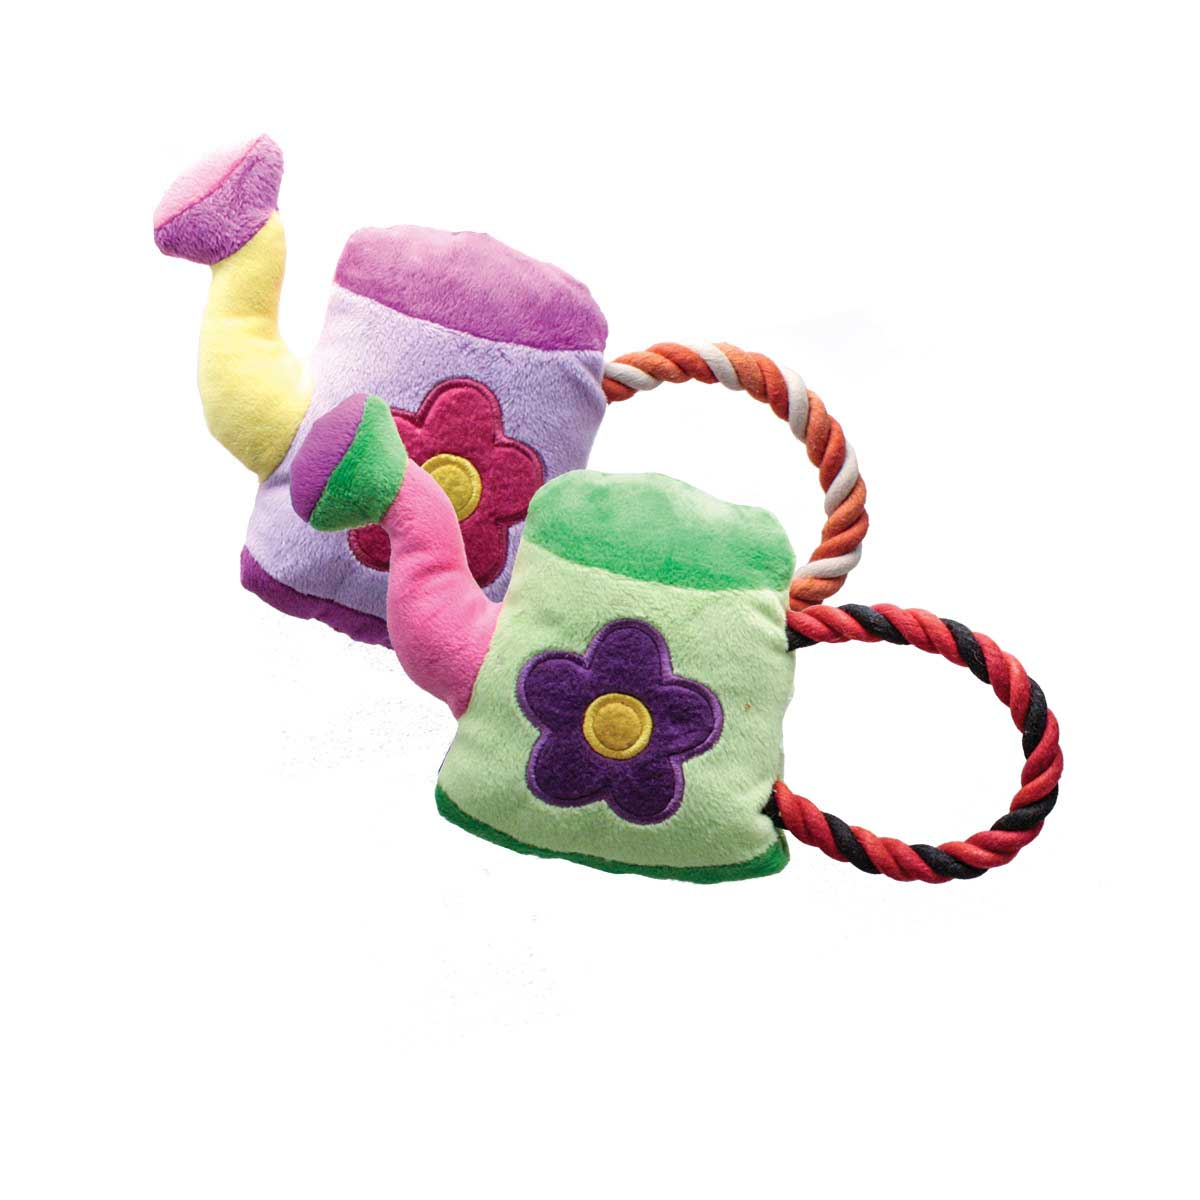 Dawgeee Toys Plush Watering Cans - 10 inch